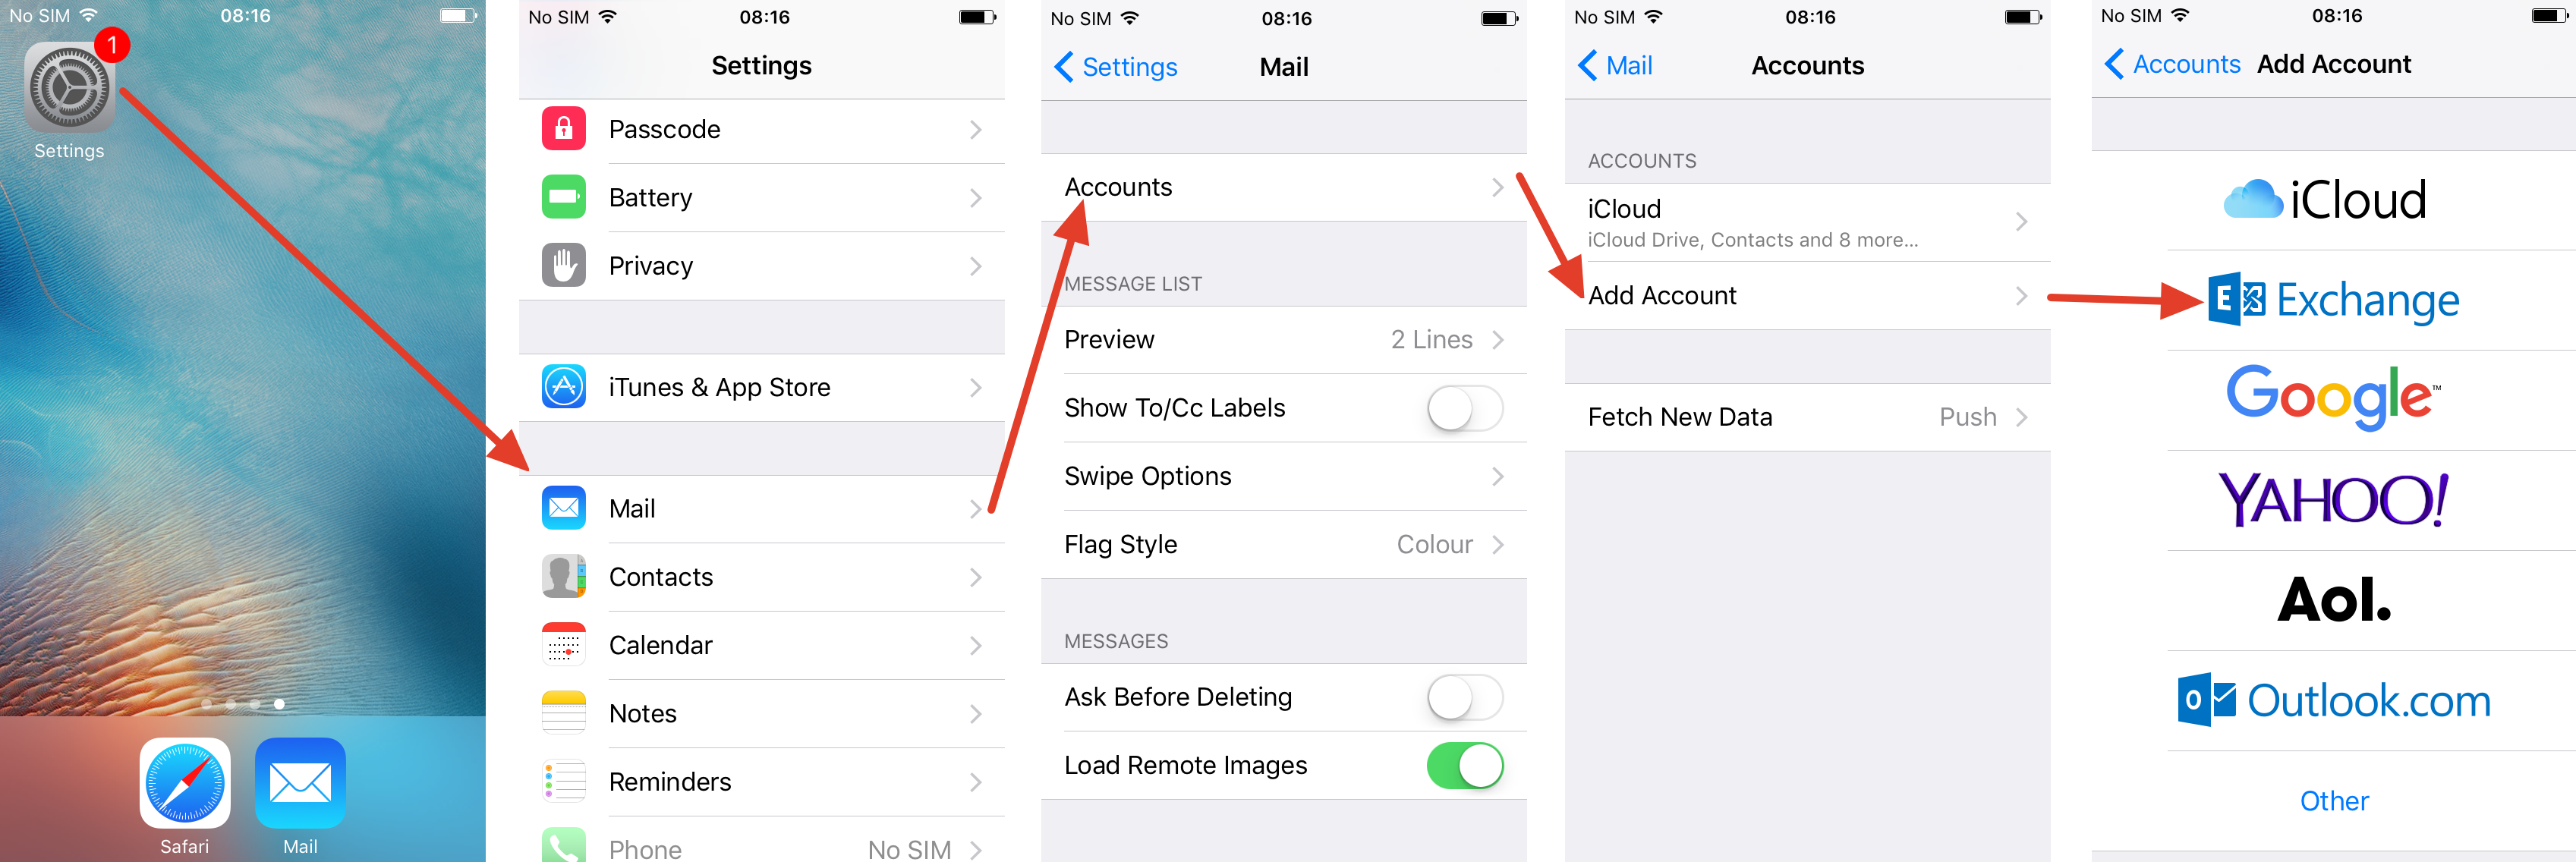 The first steps for setting up an Exchange email account on an iPhone